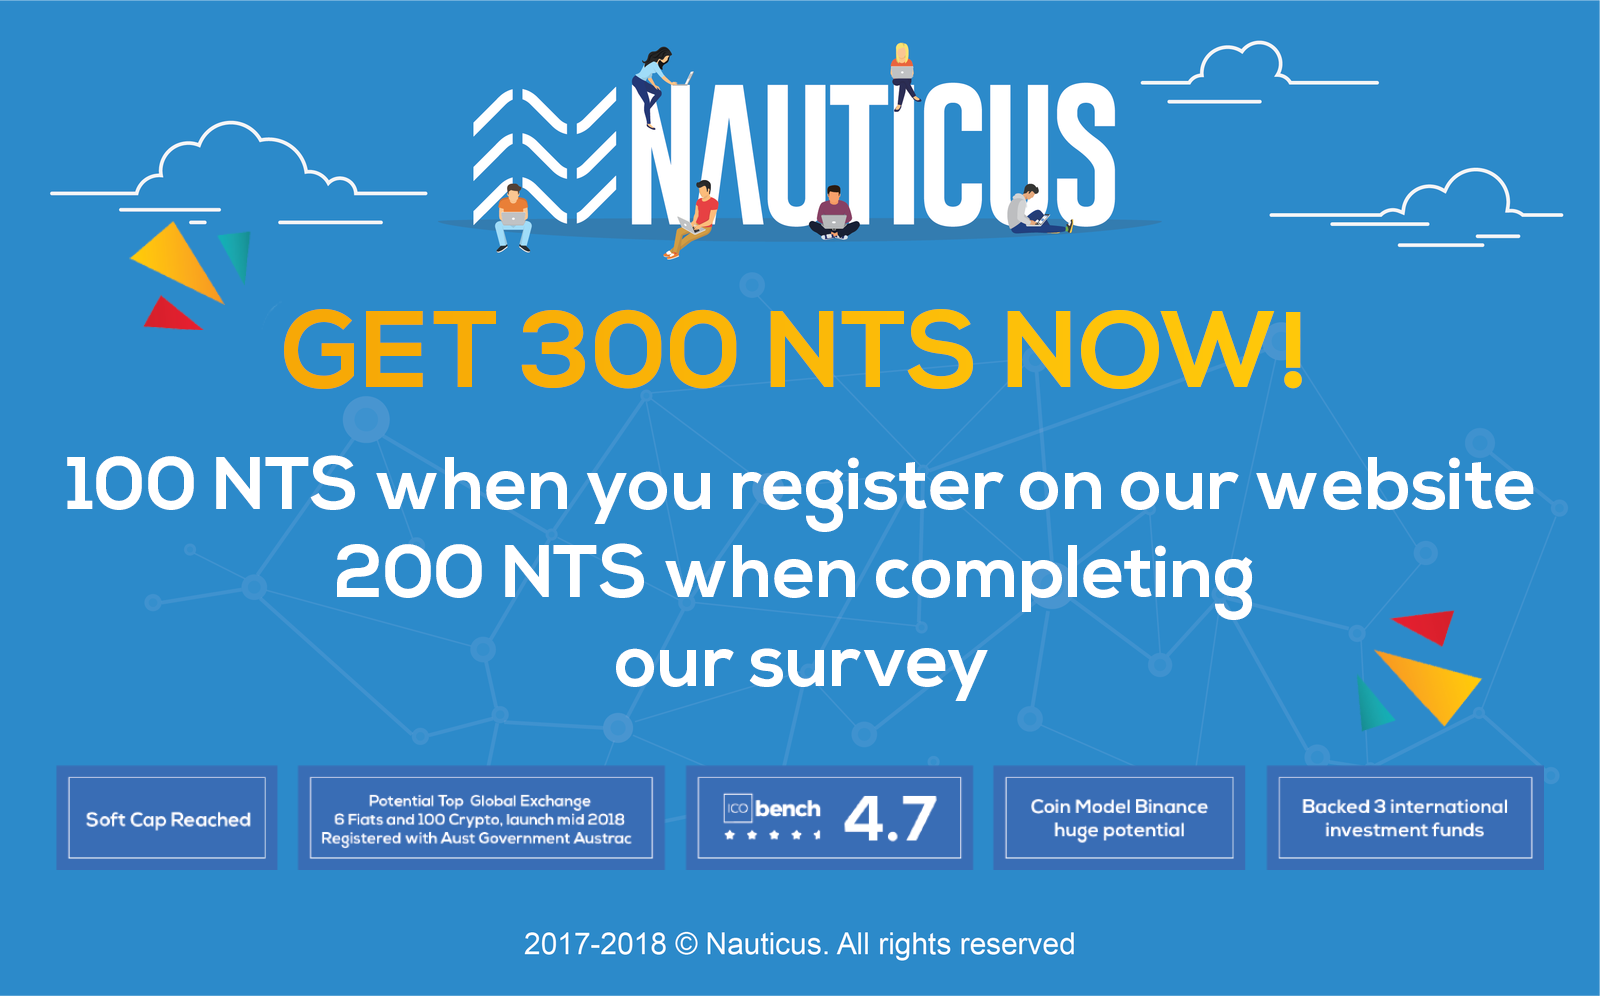 Complete our survey for 200 free NTS! - Nauticus blockchain